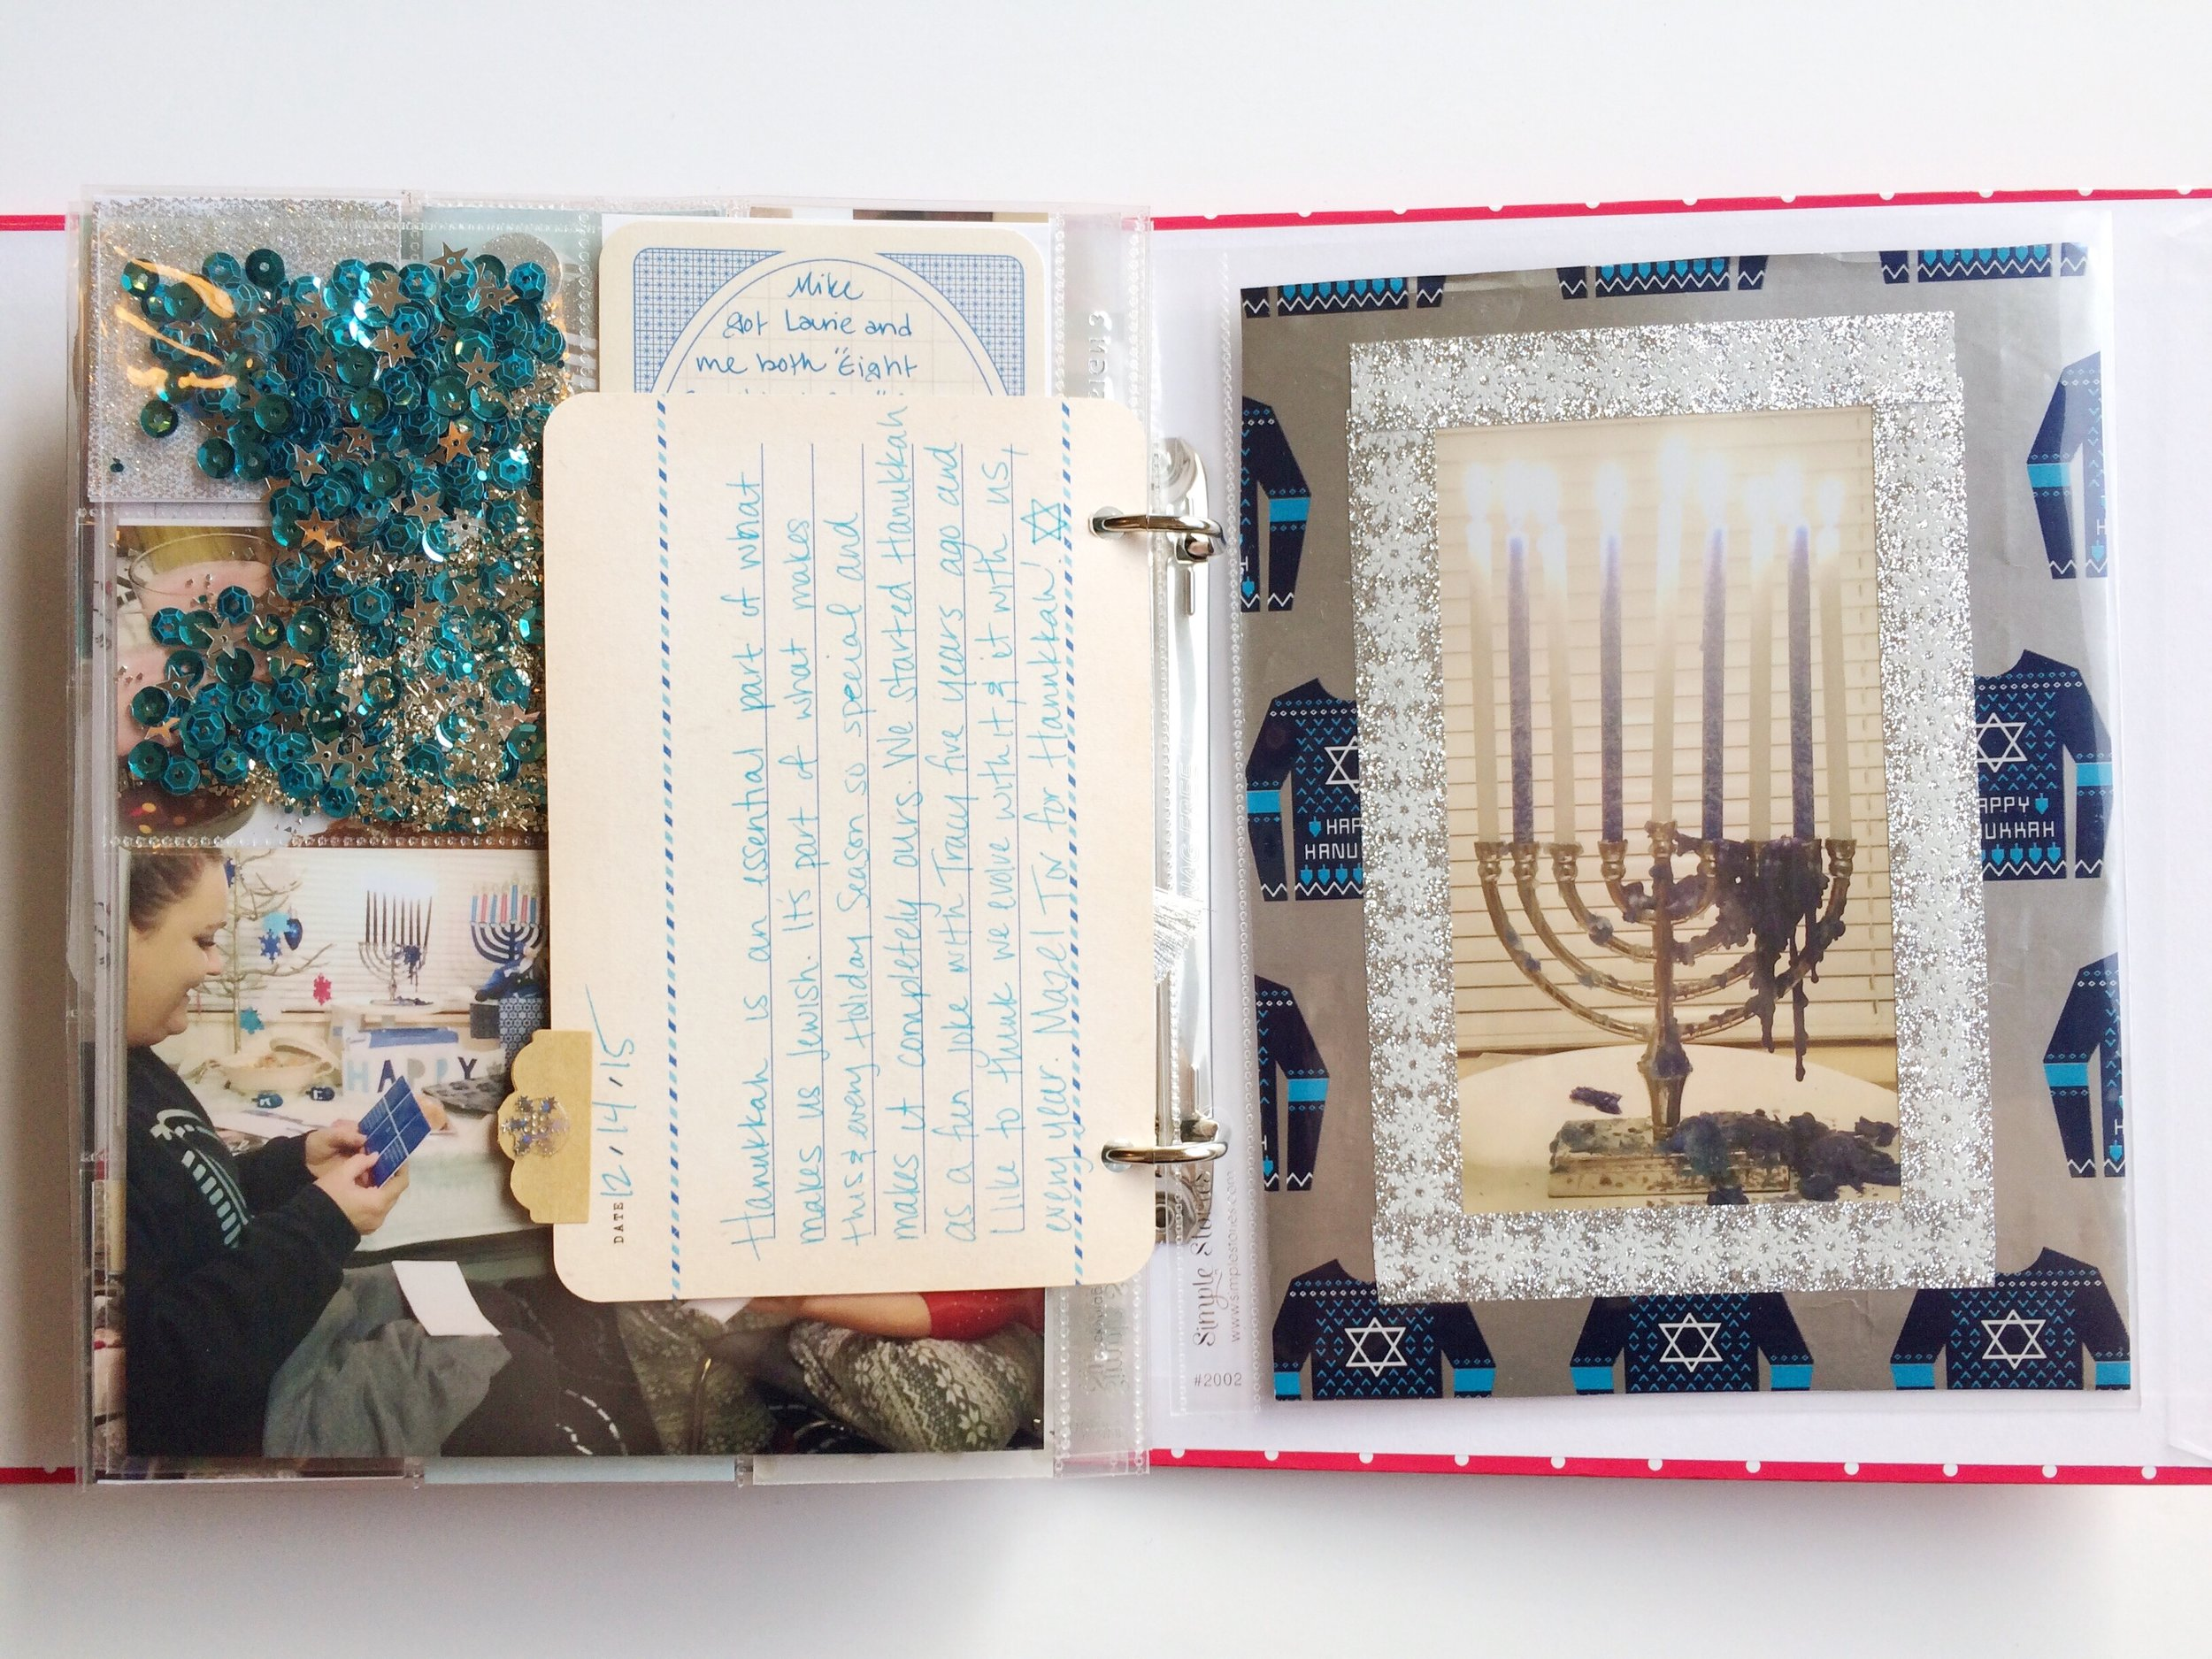 I punched holes in a 4x6 journal card and added it in as a place for Laurie and I to both share some of the reasons why we love Hanukkah.